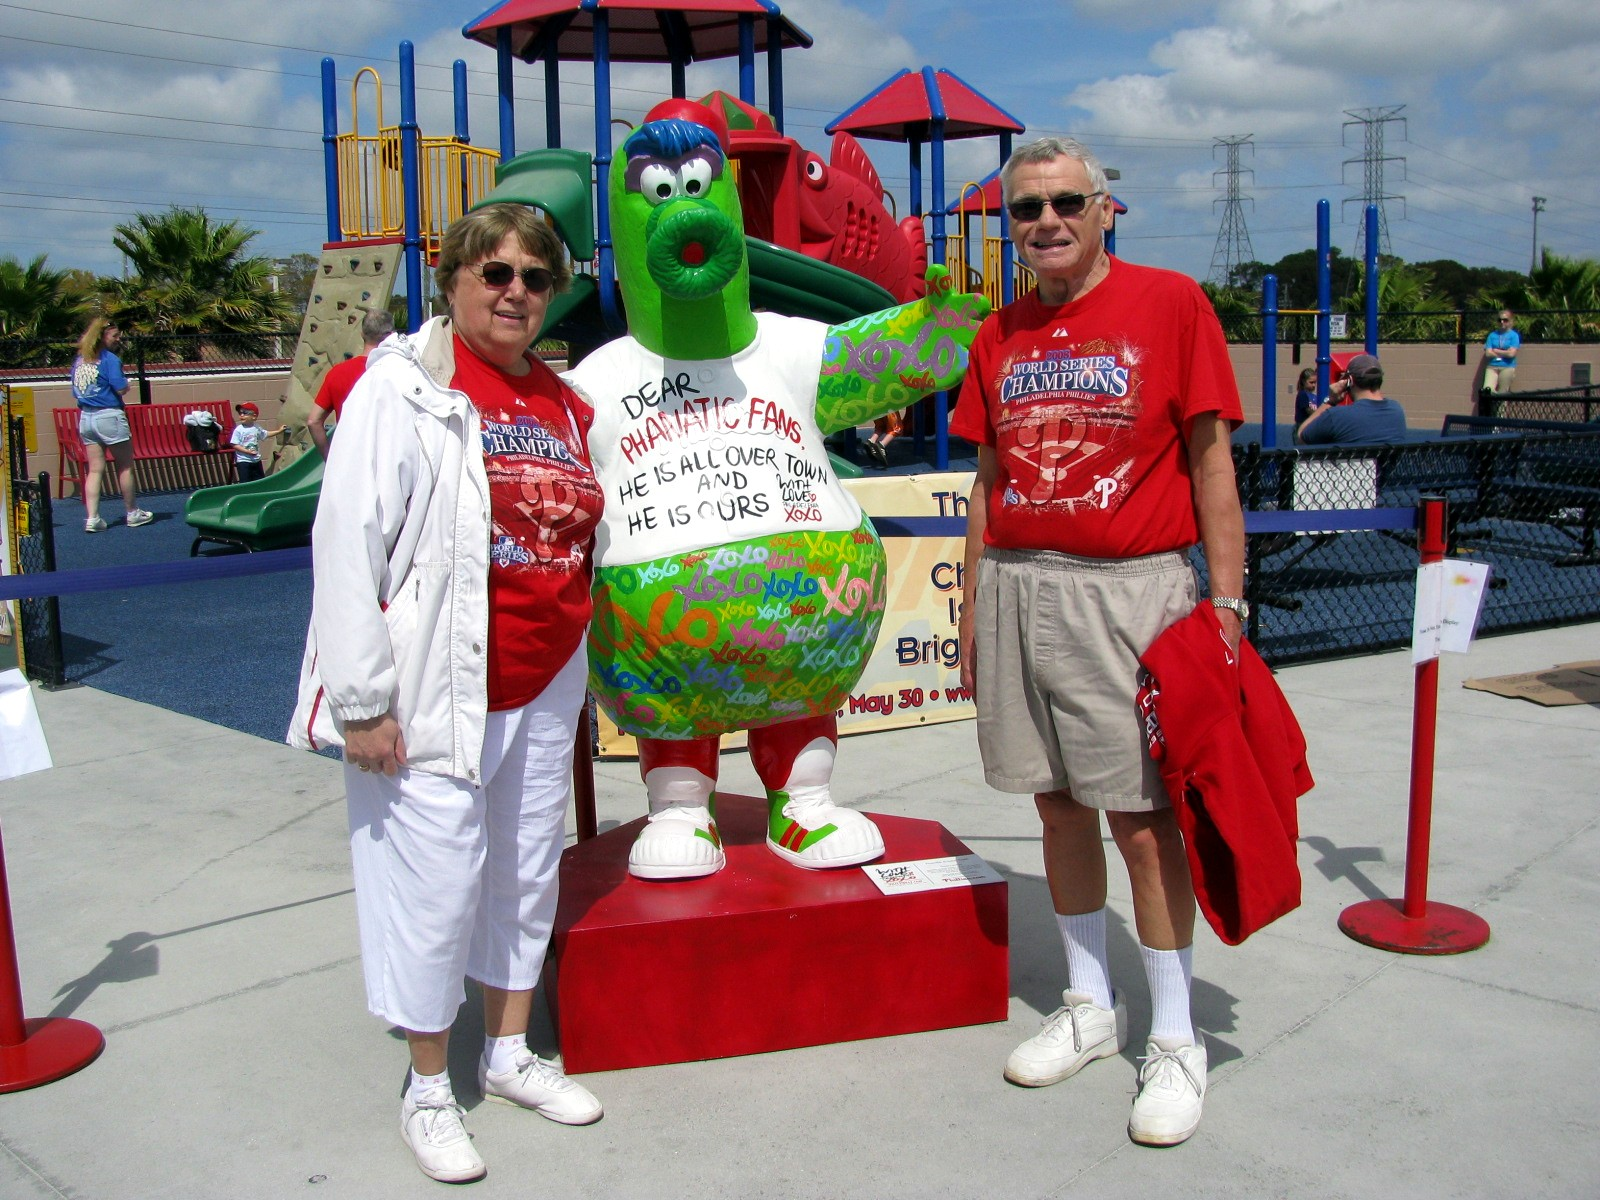 With the Philly Phanatic